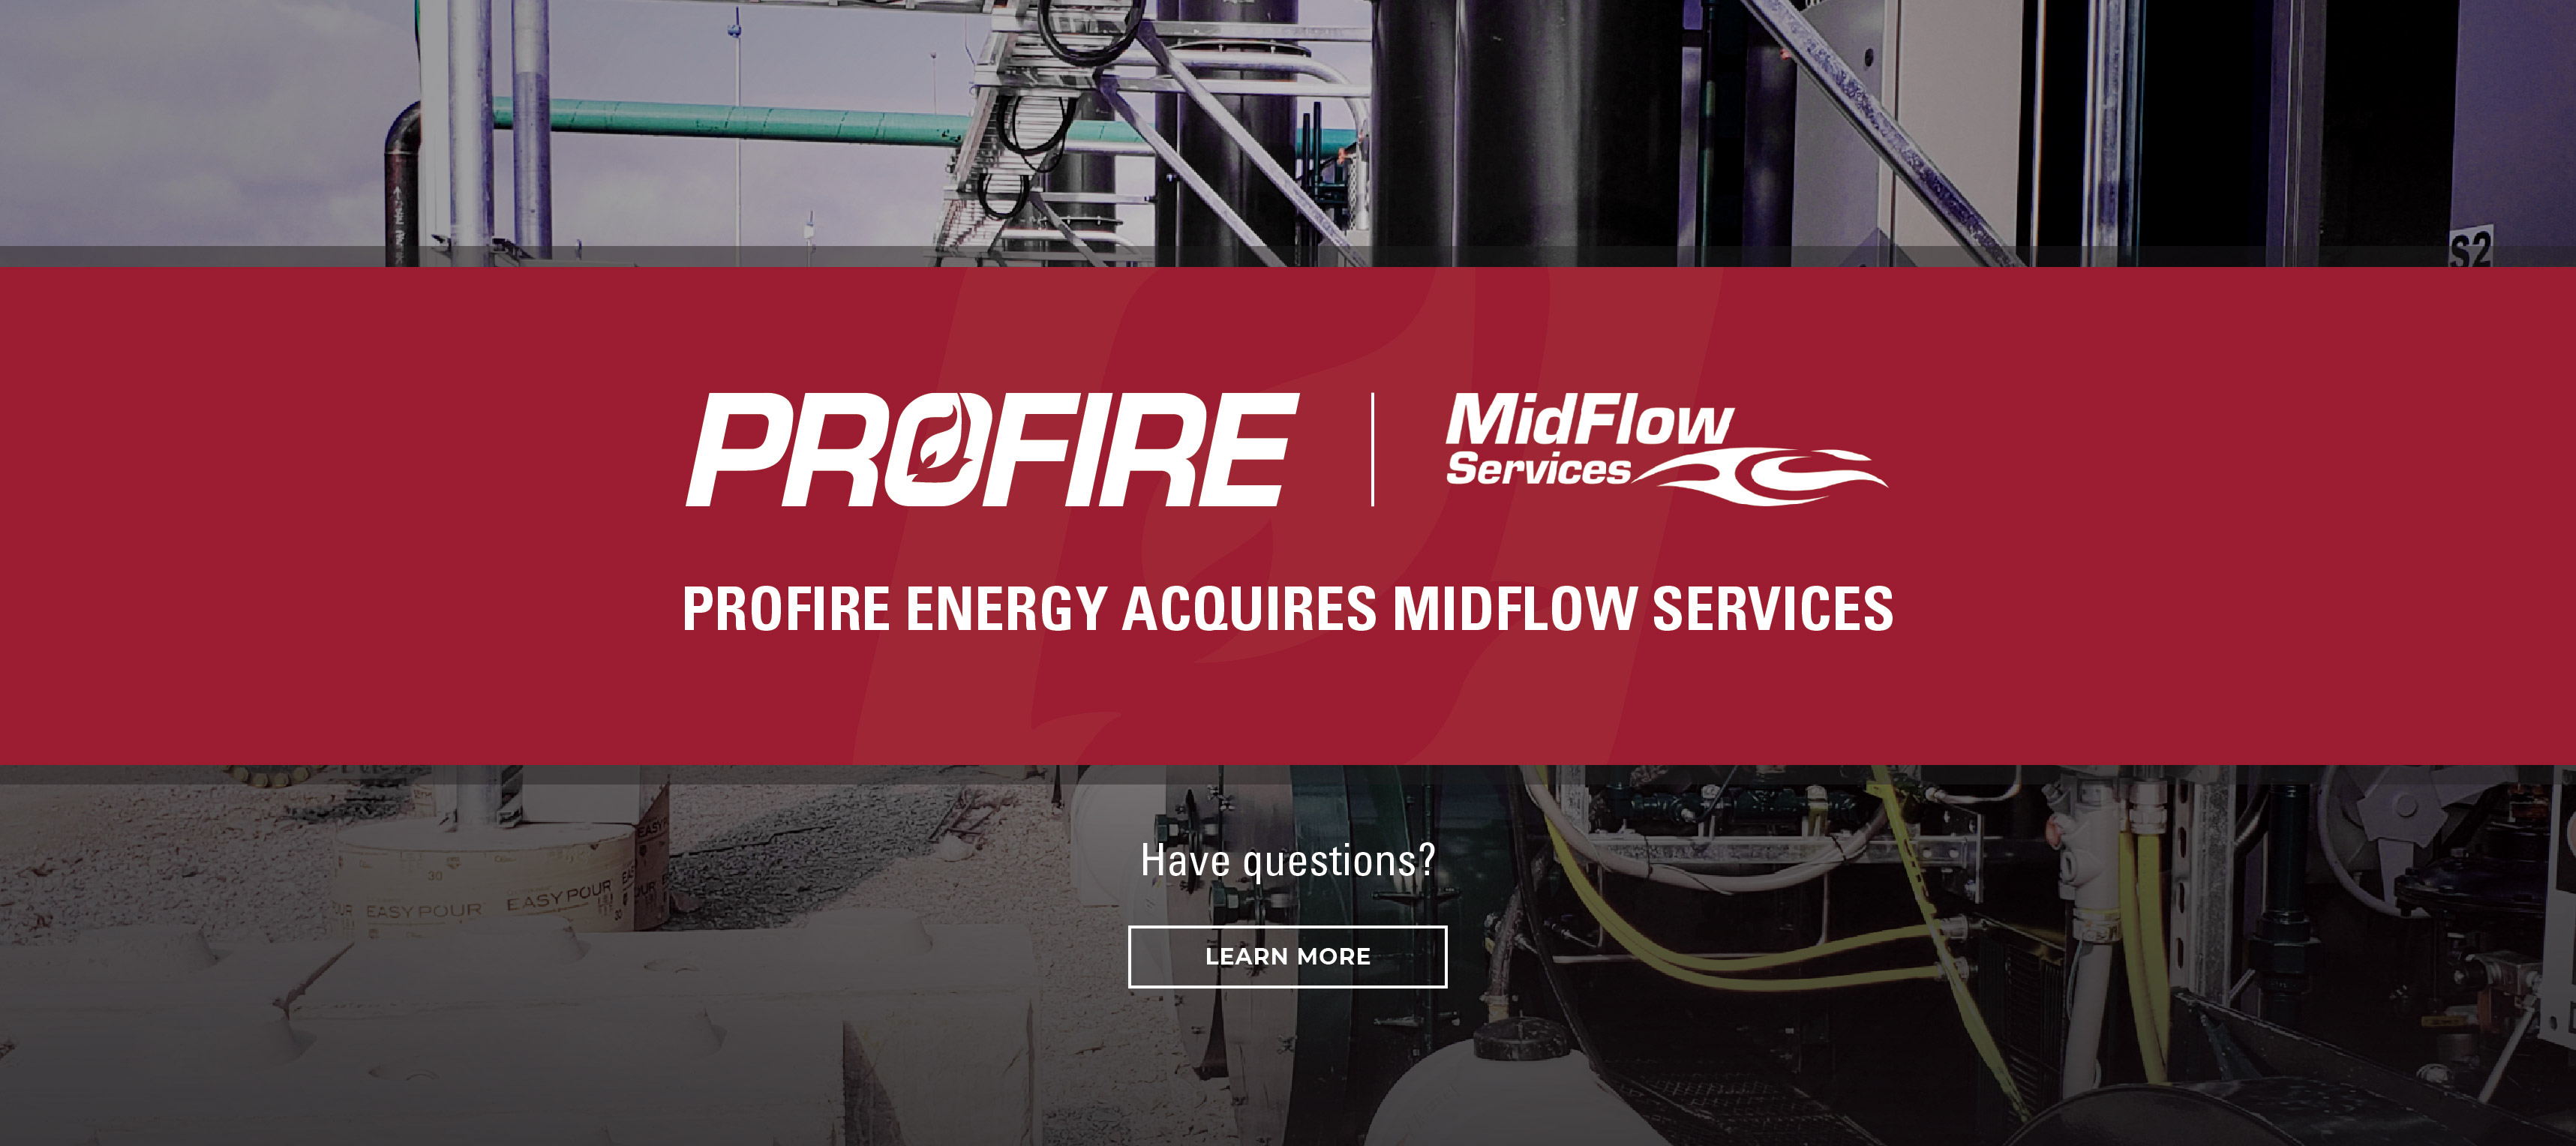 Profire acquires Midflow